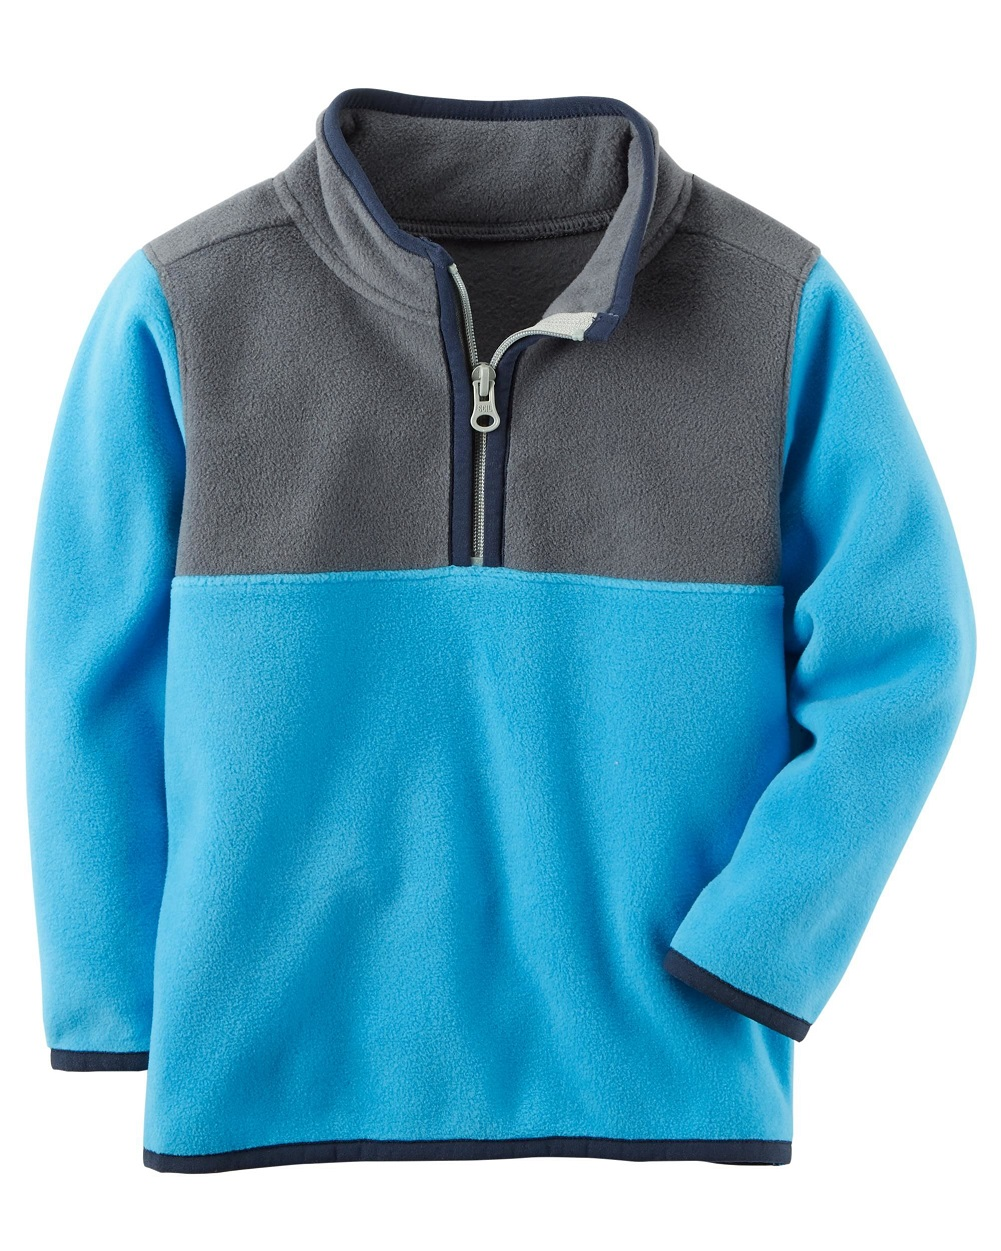 5edfe35a22c Carter's Baby Boys' Quarter Zip Fleece Pullover; Blue/Grey/Navy, 6 Months